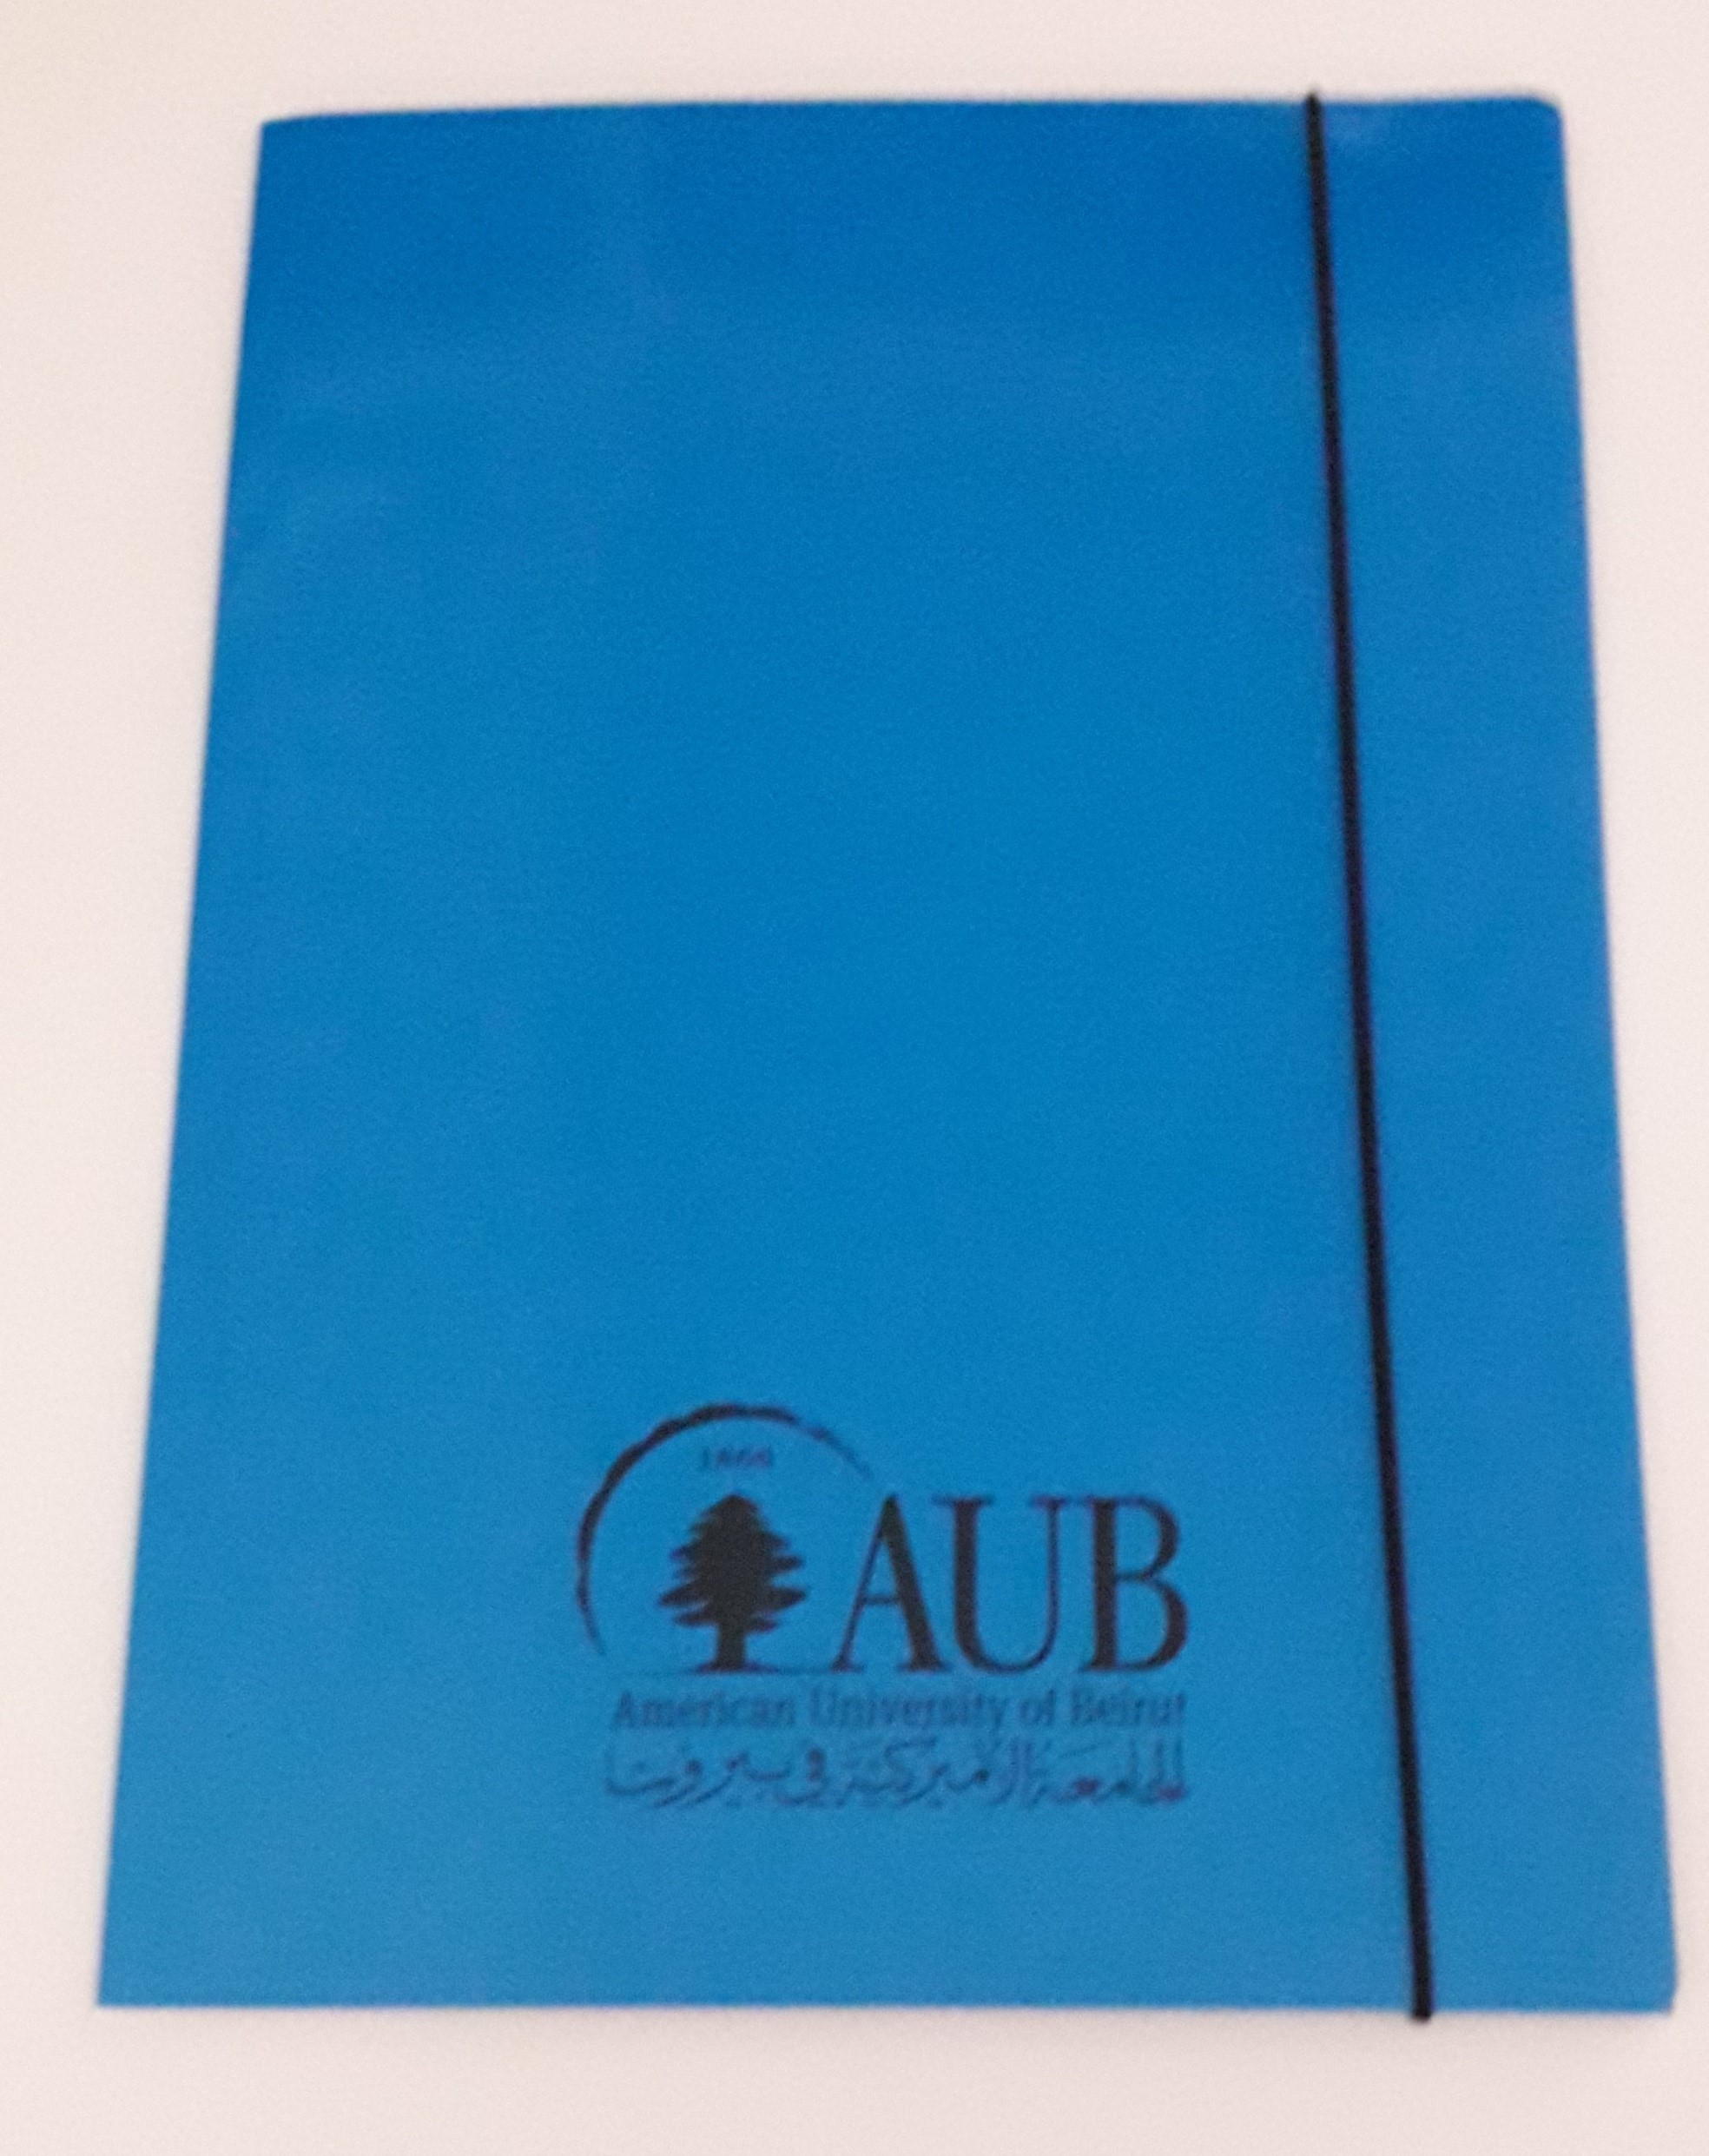 AUB Elastic Folder Blue 400g